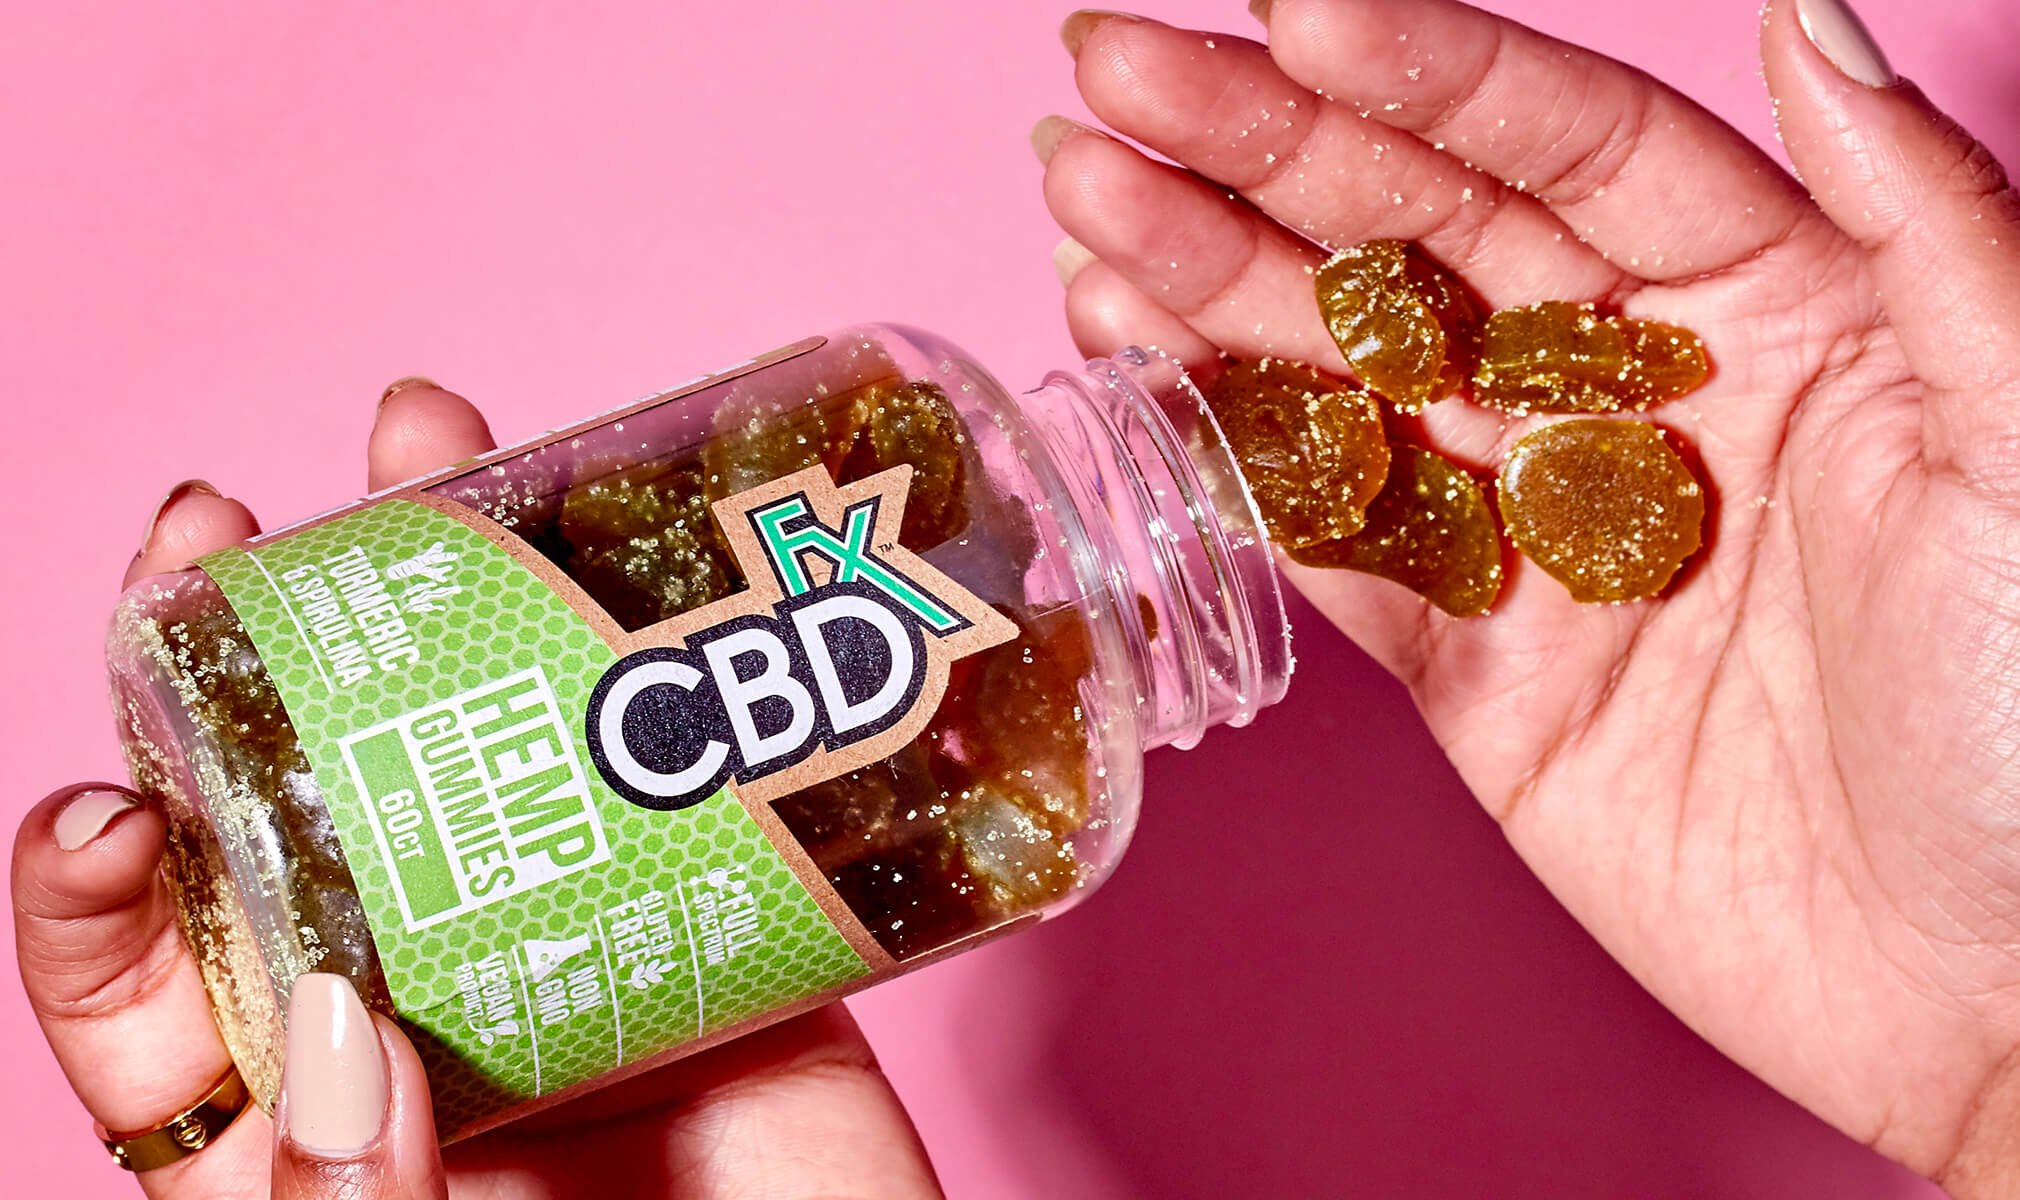 Top 5 Best Cbd Products